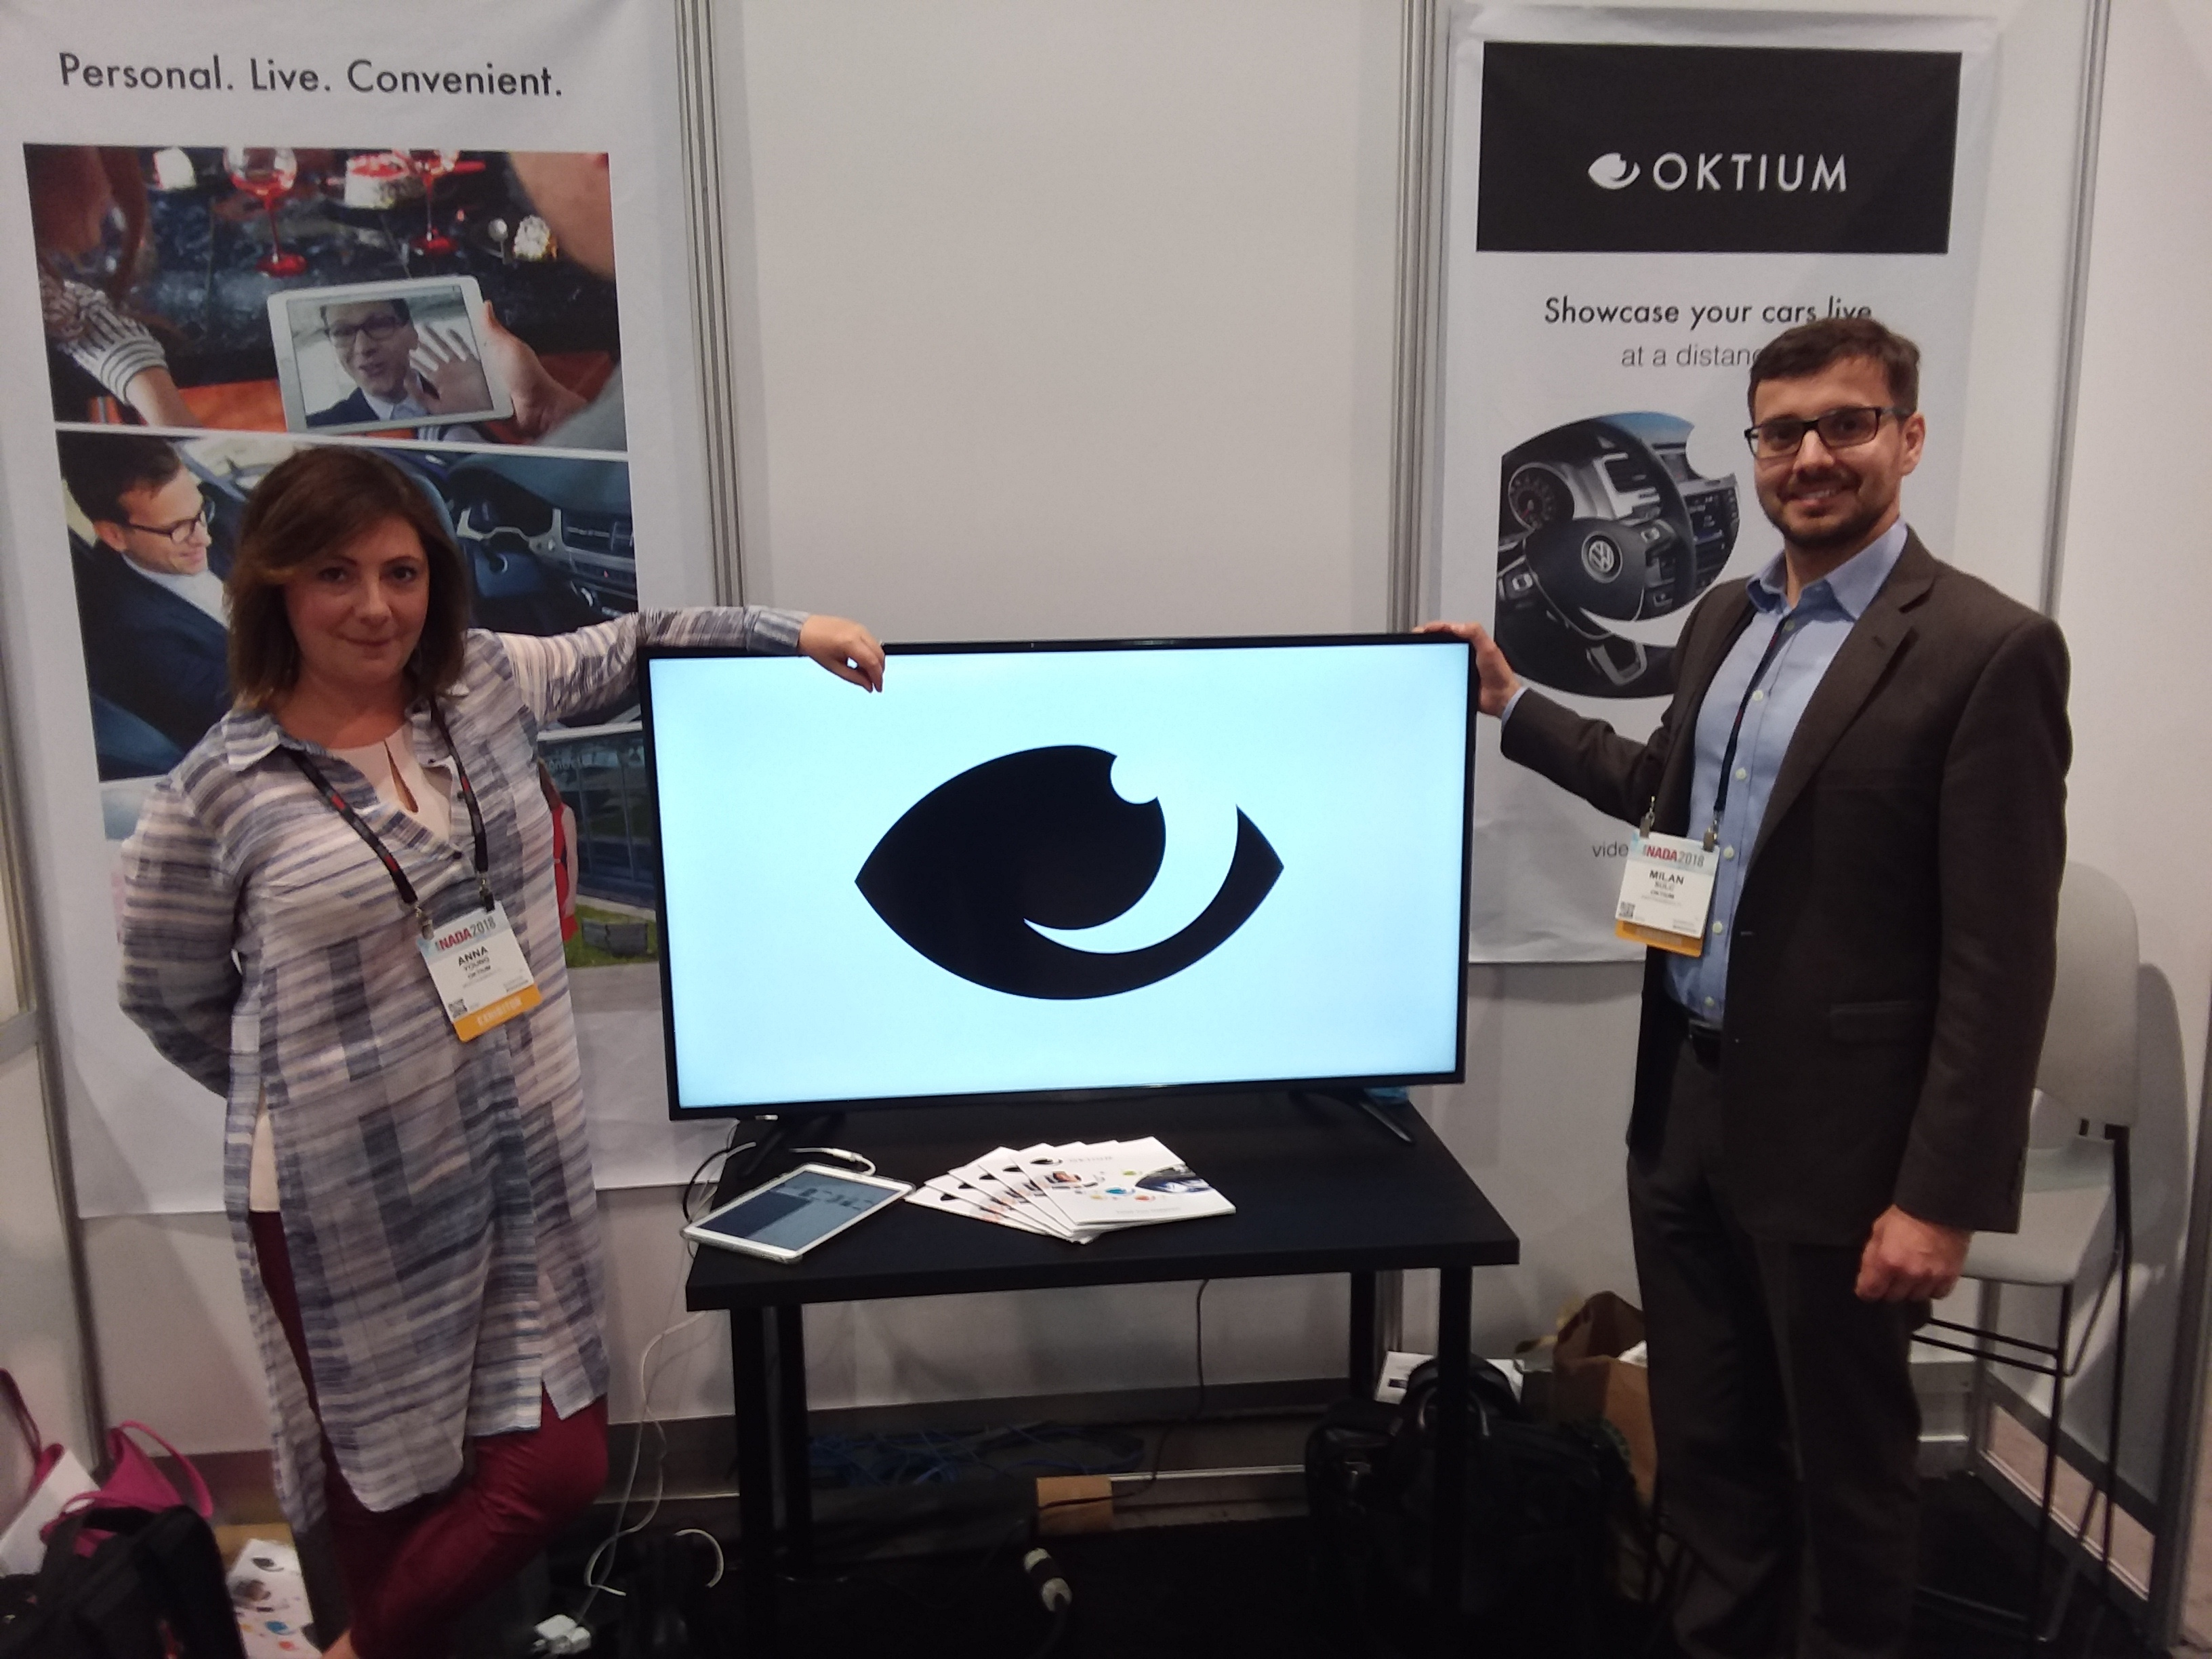 Oktium technology works very similarly to technology like FaceTime or Skype.